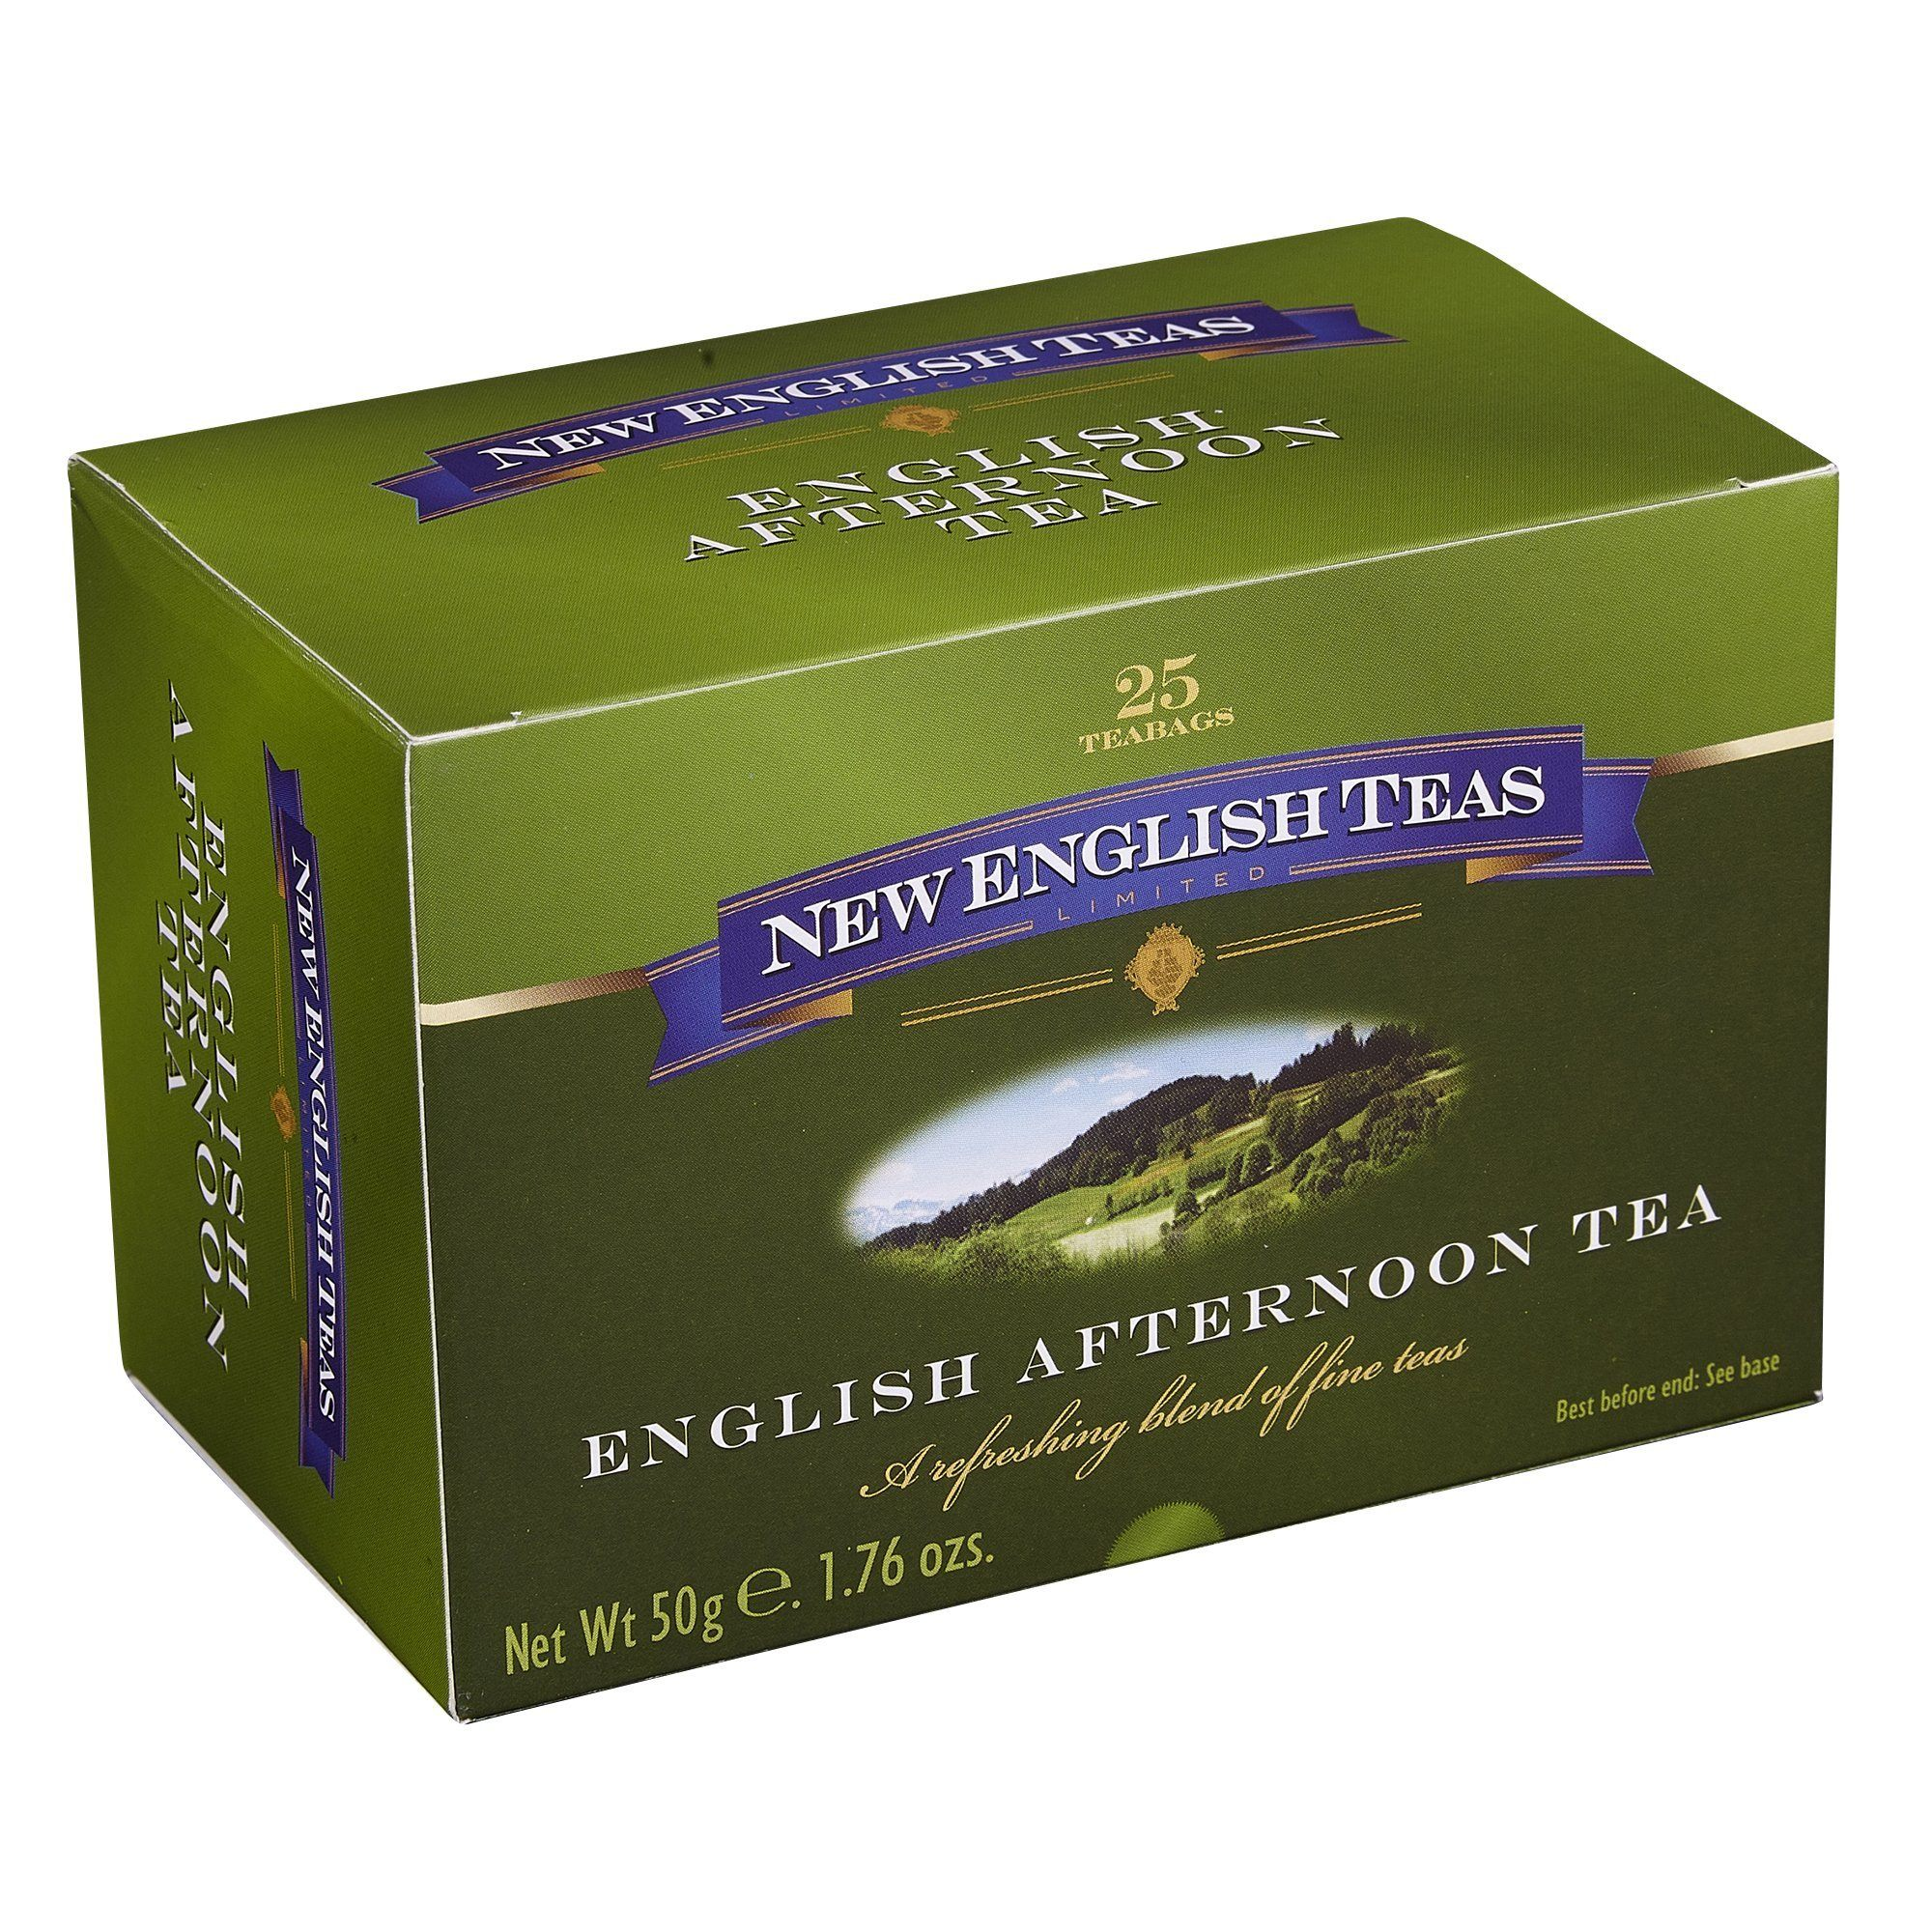 Classic English Afternoon Tea, 25 individually wrapped teabags Black Tea New English Teas